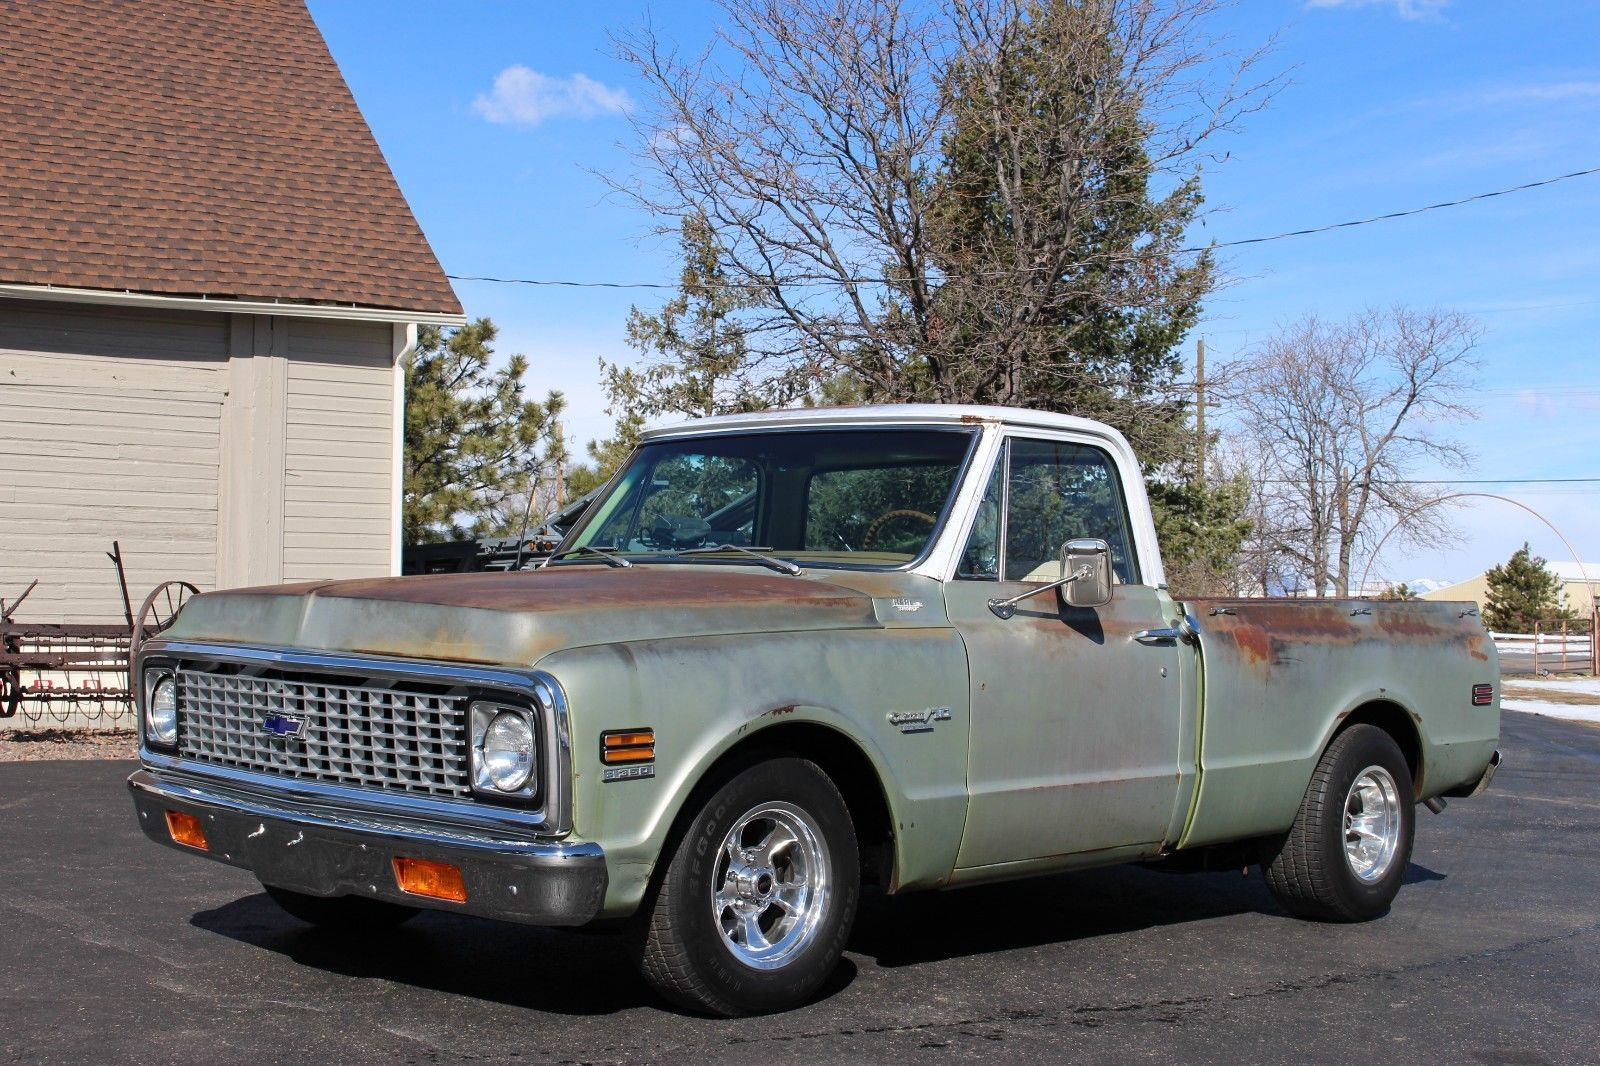 9b4aba4cfcb93 eBay  1972 Chevrolet C-10 Custom Deluxe 72 Chevrolet C10 short box HOT ROD  pickup with lots of FACTORY options RESTORED  classiccars  cars